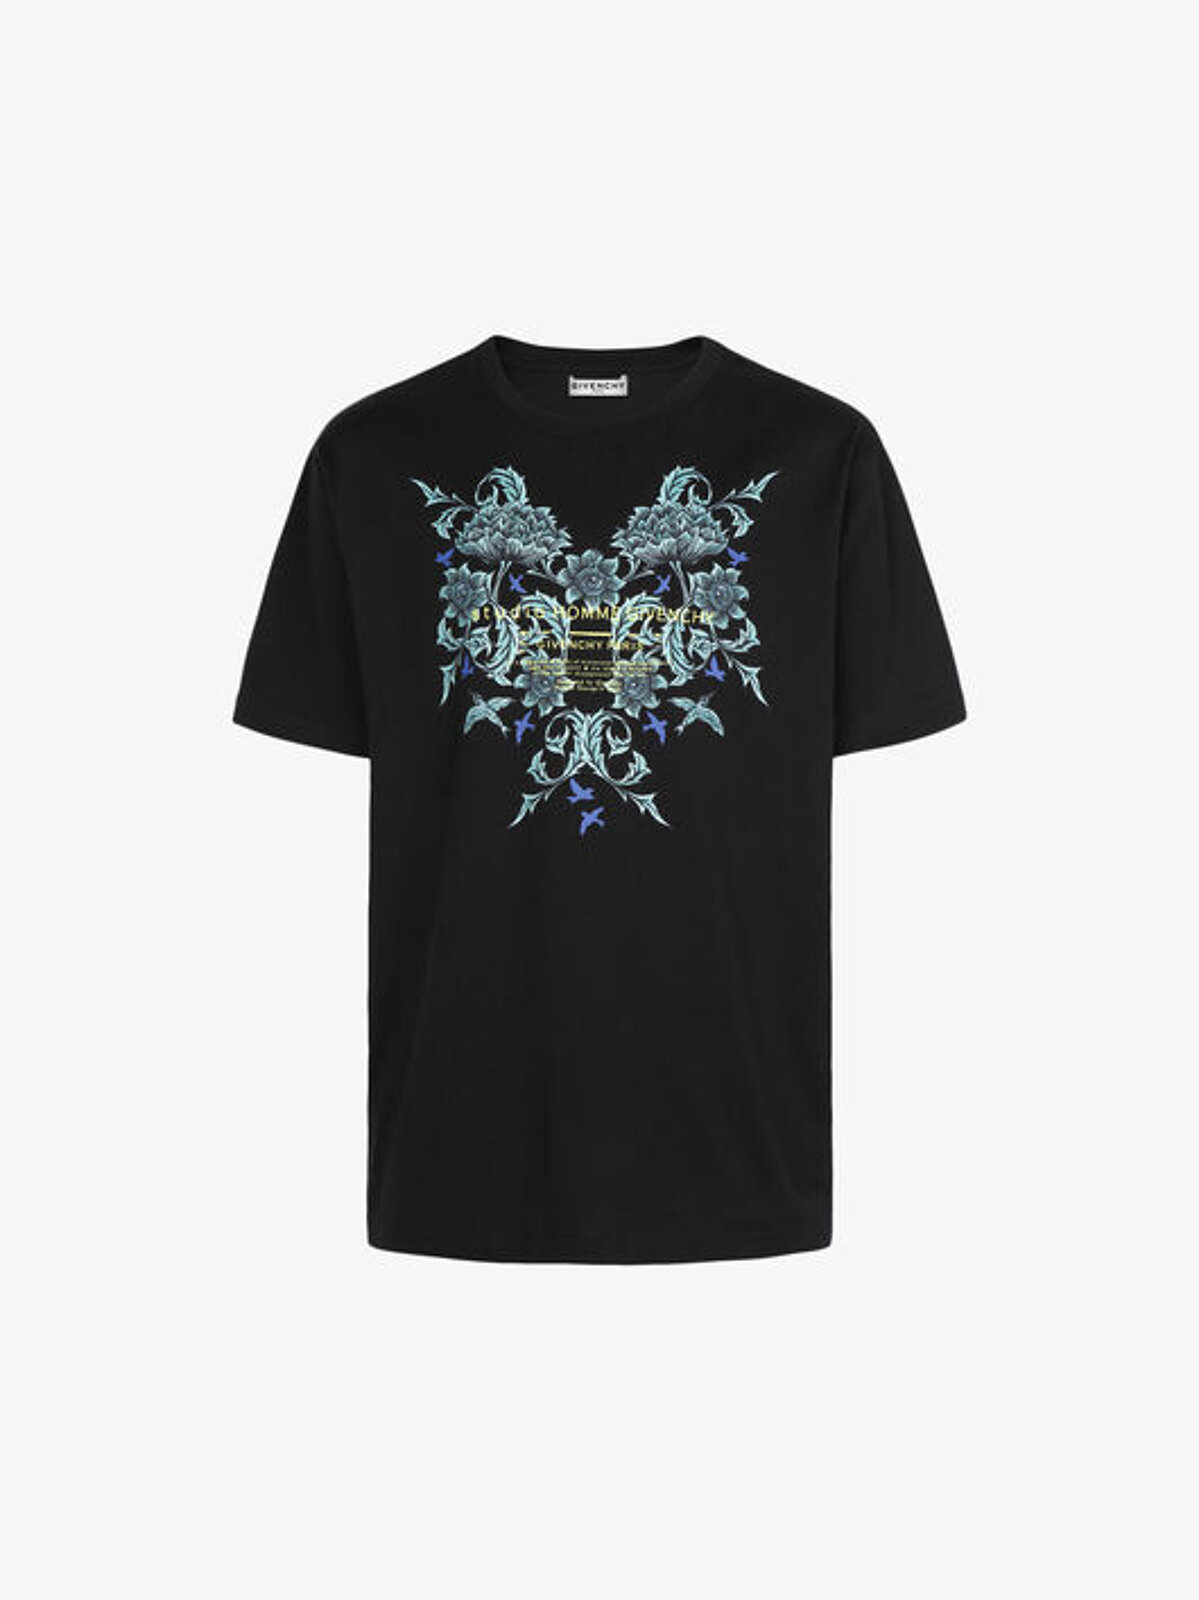 T-Shirt Con Stampa Floreale Studio Homme - Givenchy